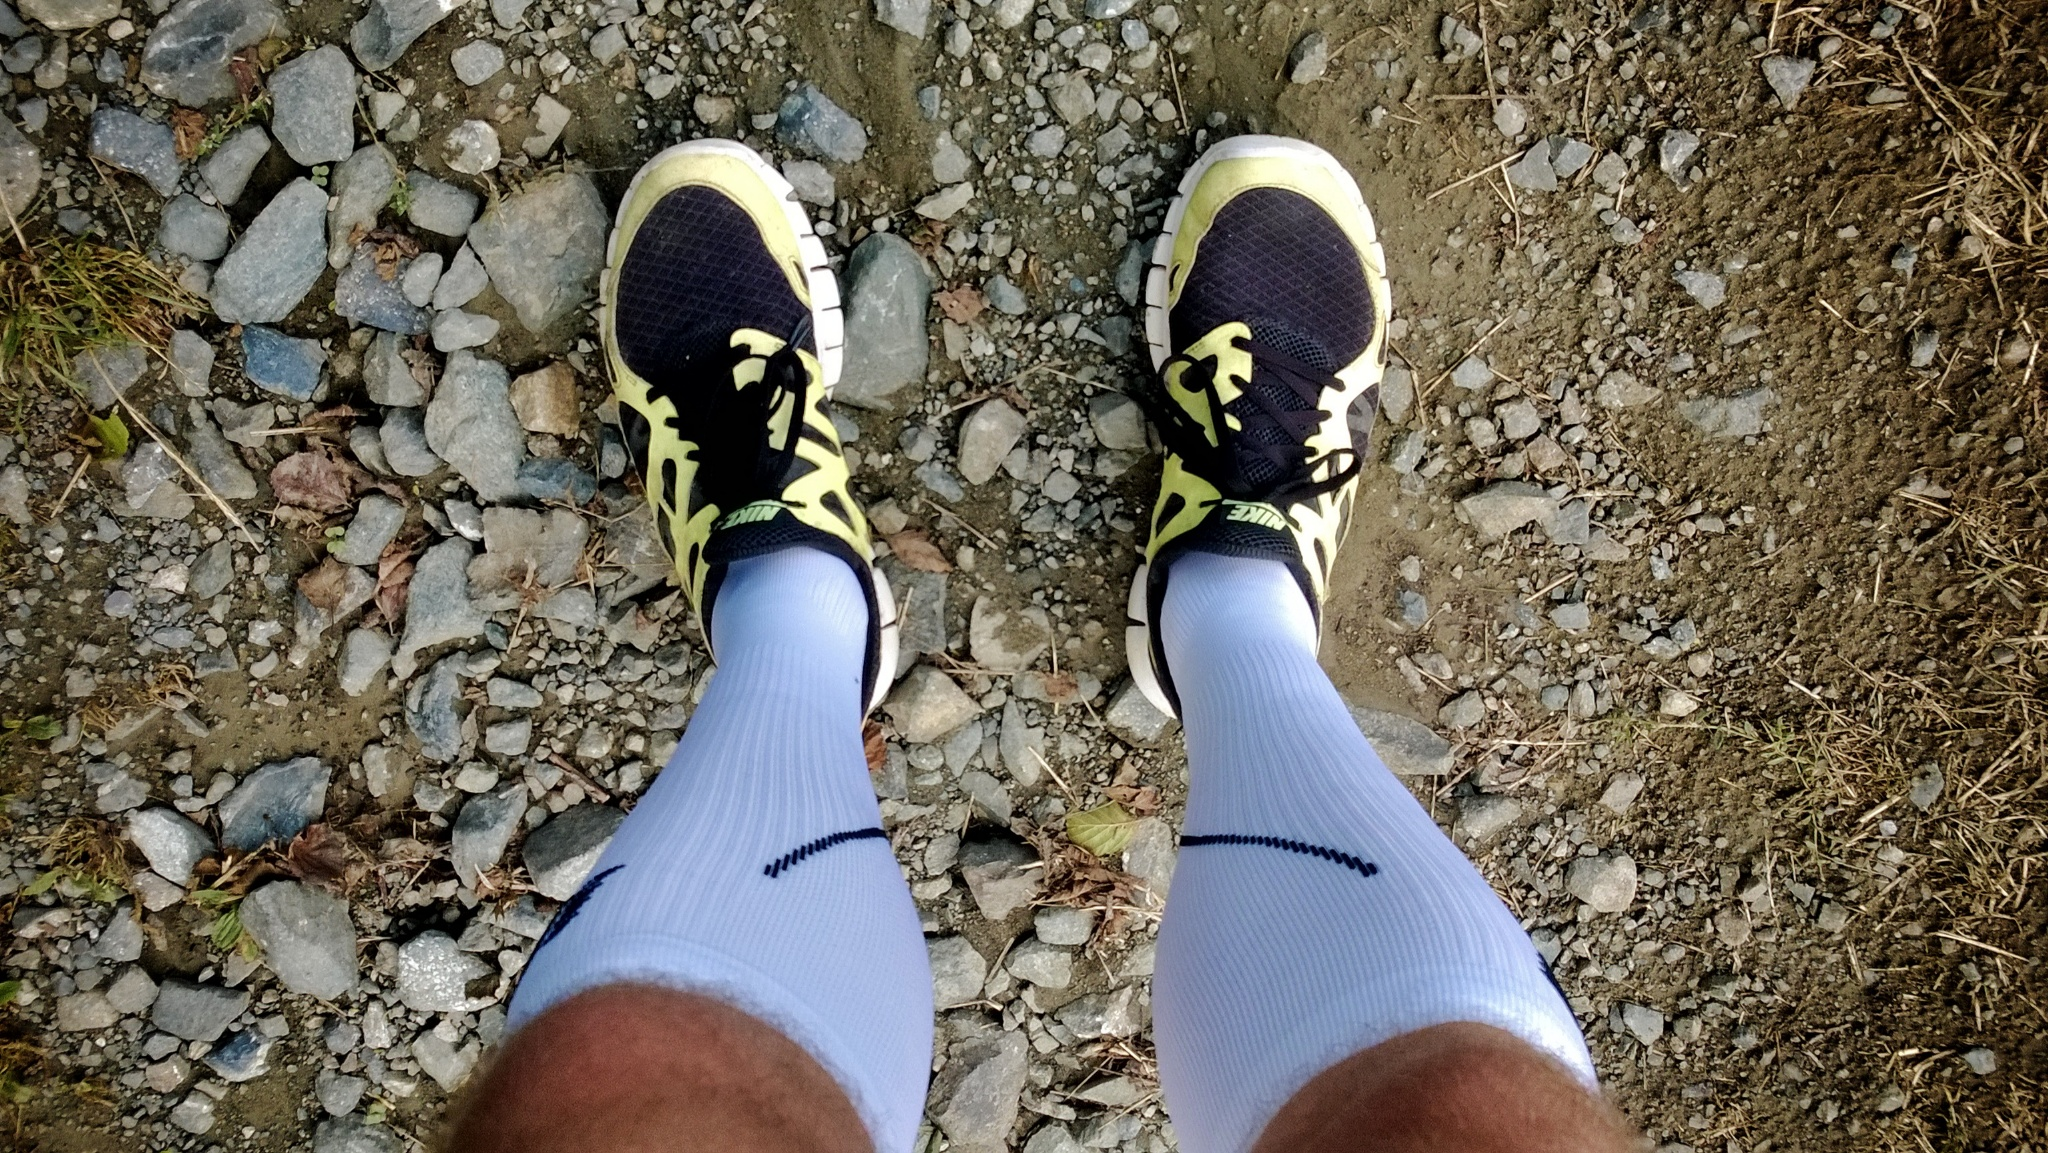 Kompressionsstrum CEP Pro+ Run Socks 2.0